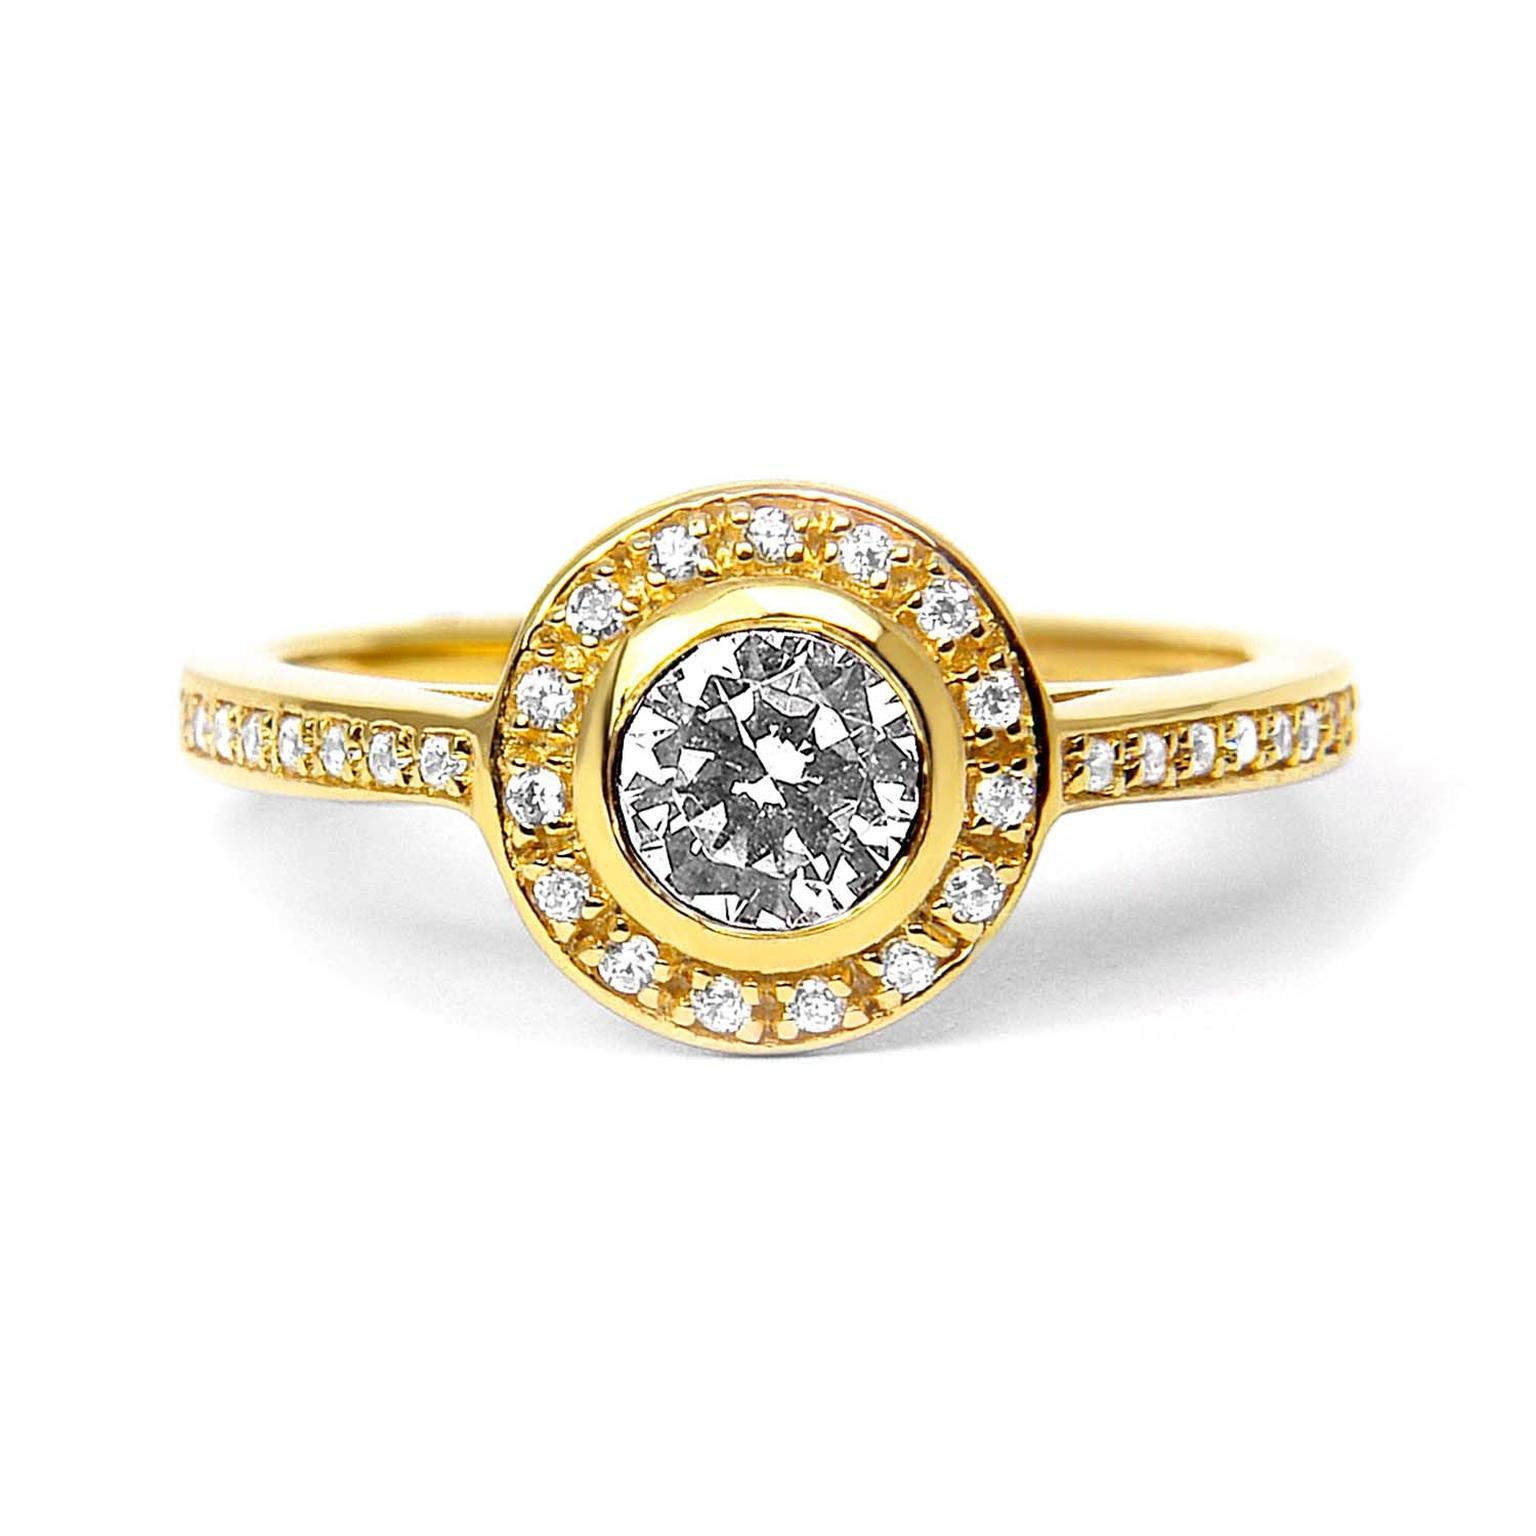 upscale us recycled jacobs scale crop in a ethical wedding ring article michelle rings pear desire fuels shaped subsampling bridal false designers creating diamond available with yellow sustainable engagement for rise either barbara